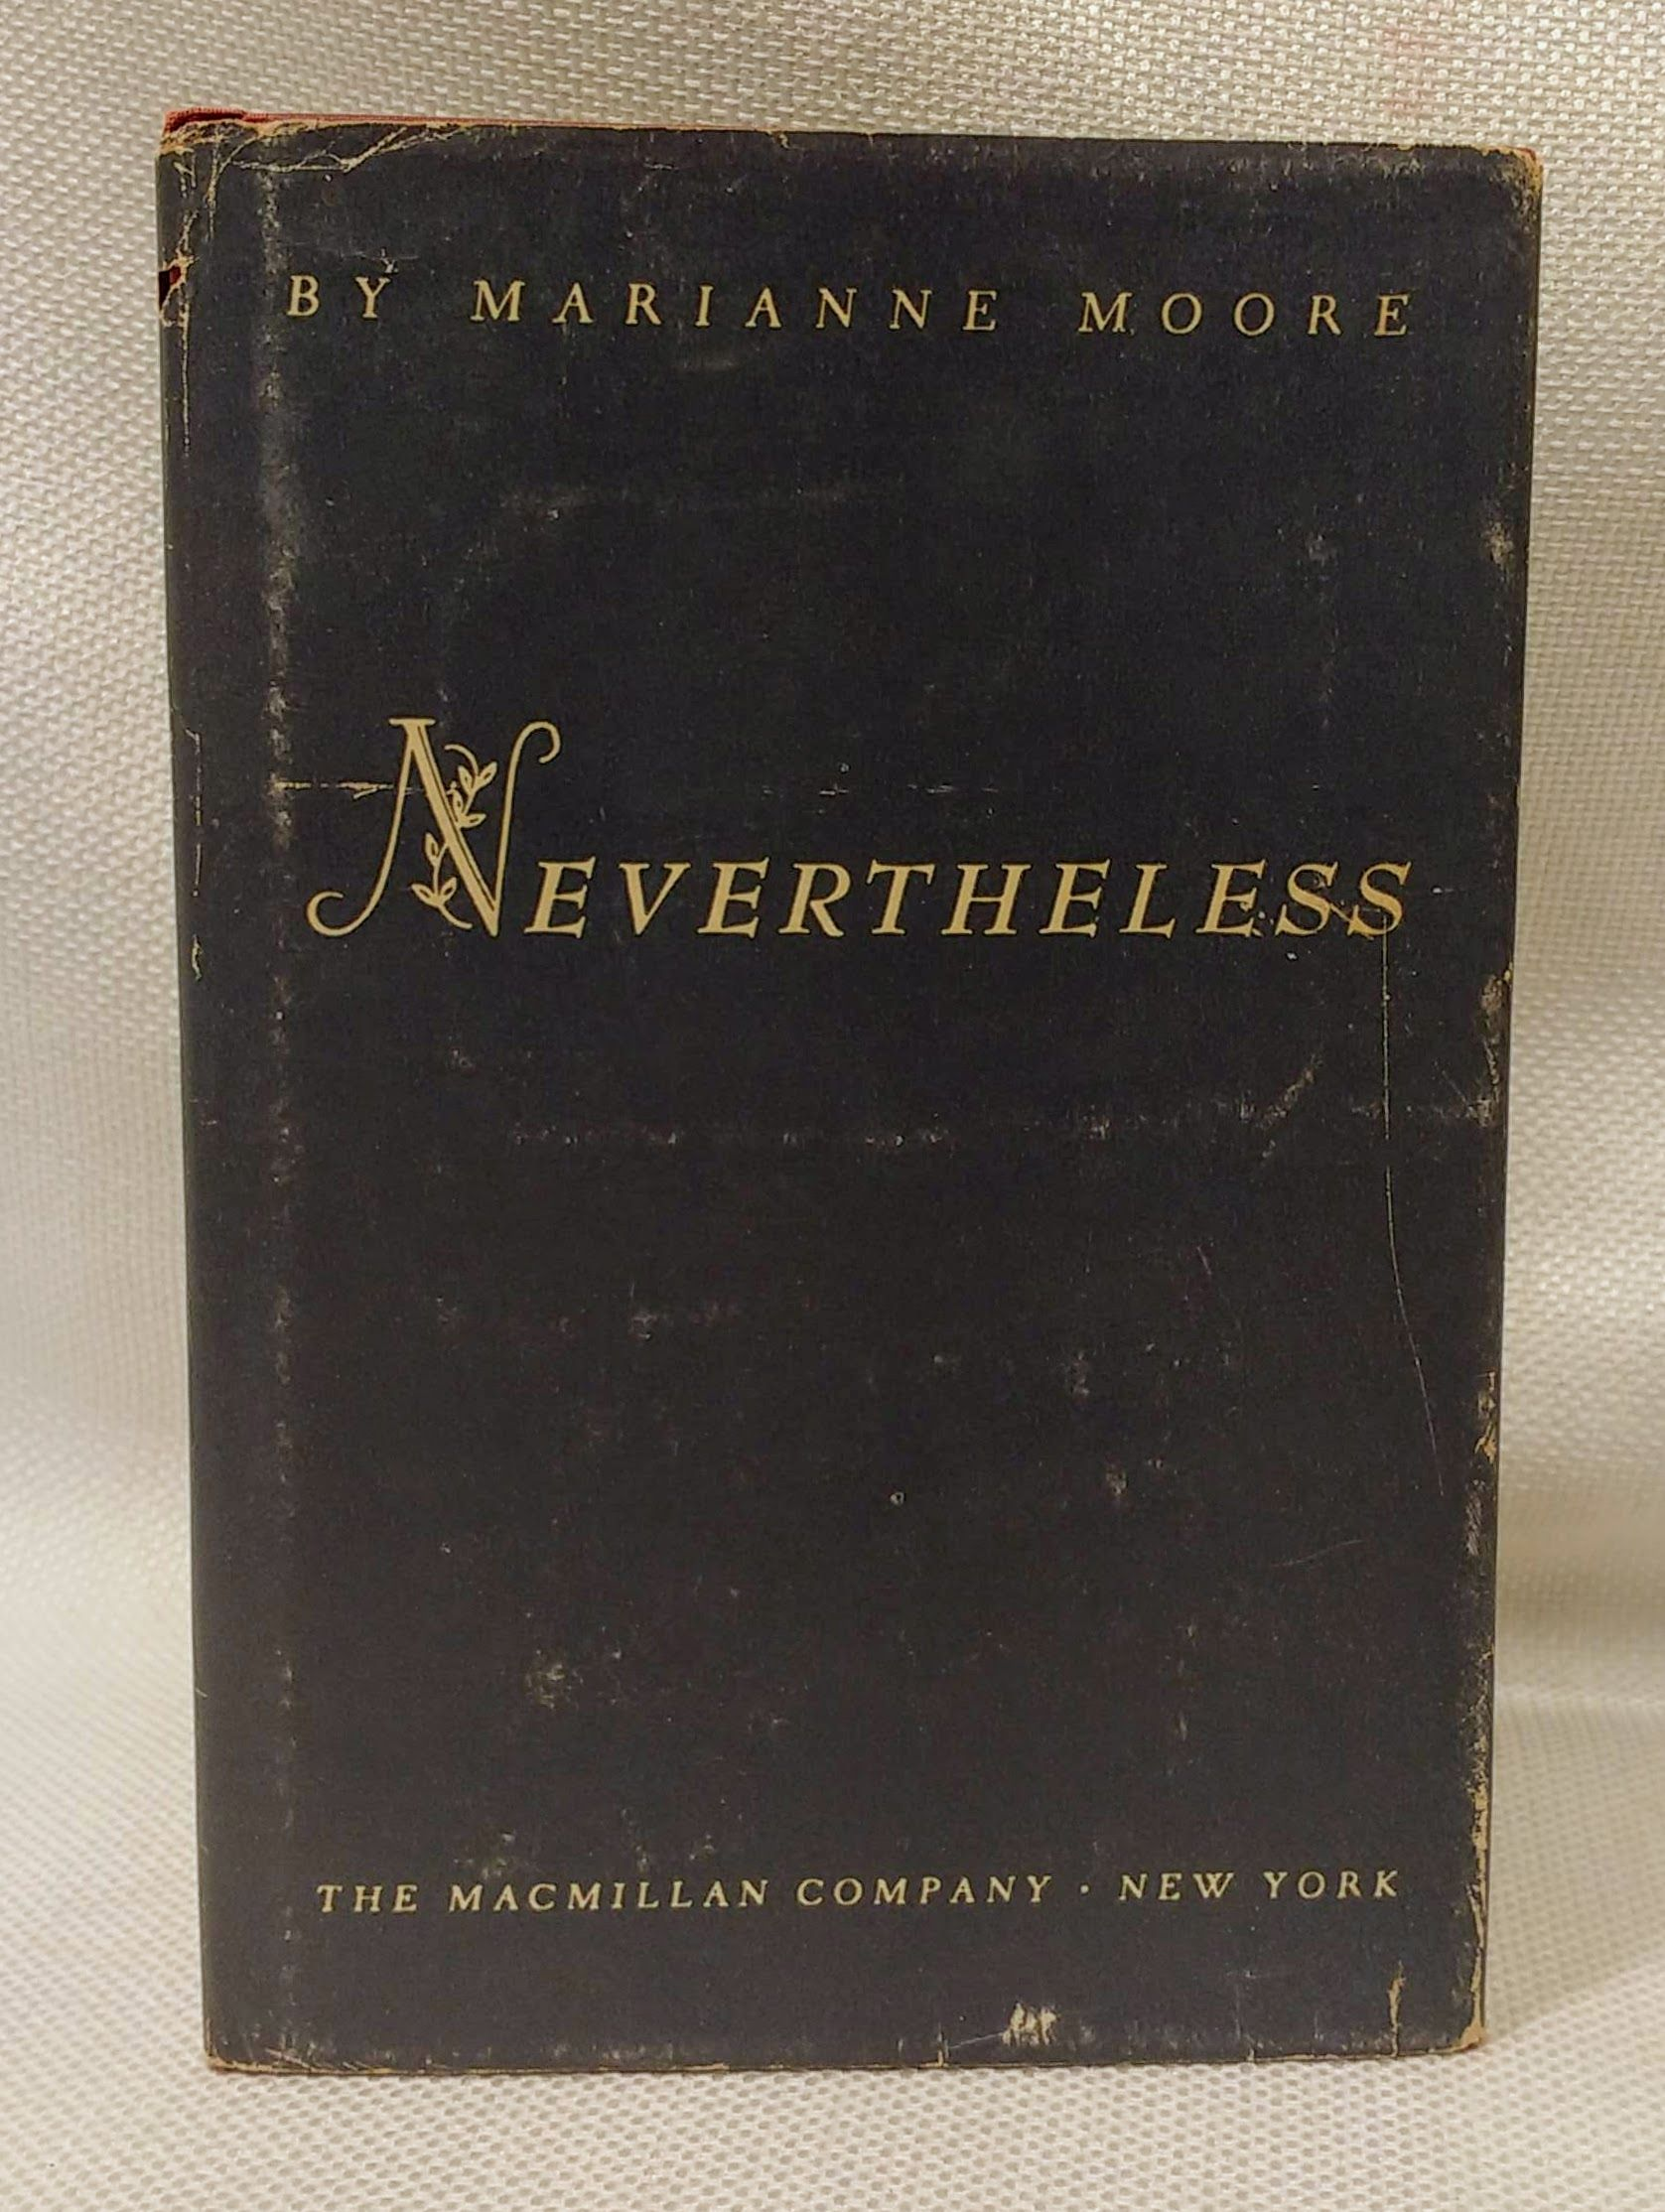 Nevertheless, Moore, Marianne